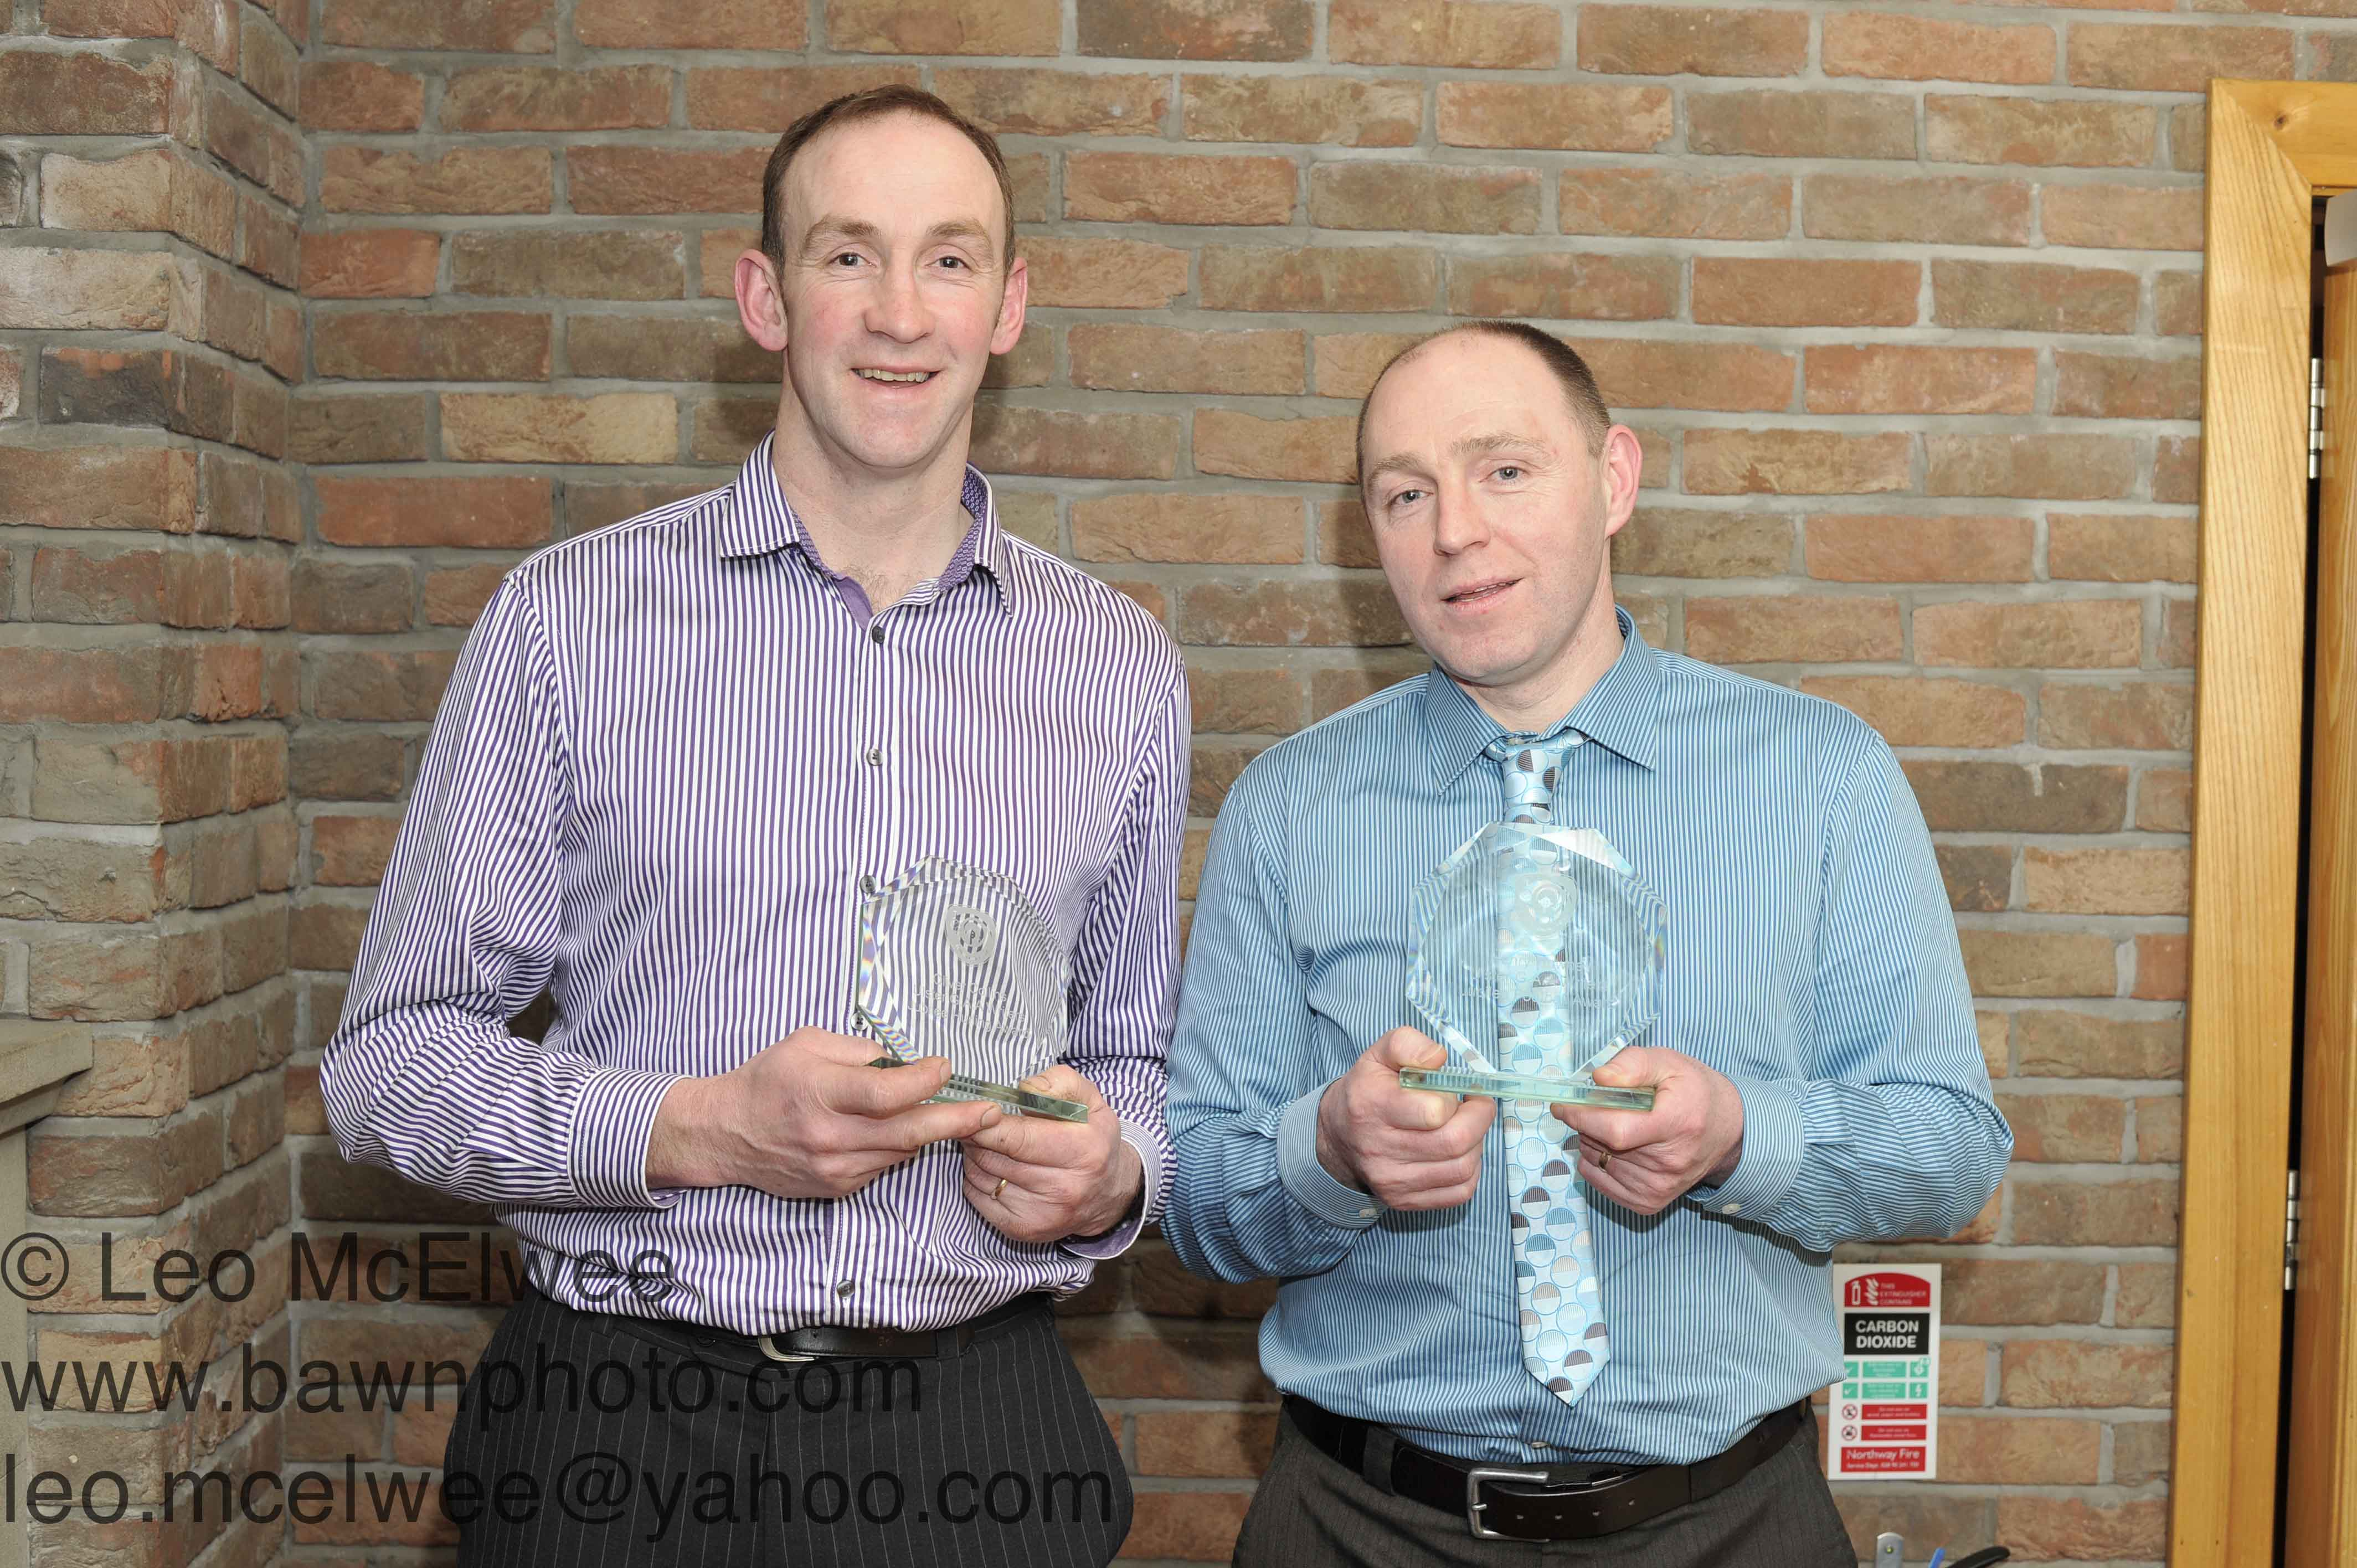 Ollie Collins and Henry Downey were presented with individual awards to celebrate the fact that they were named on the Ulster GAA Writters' Jubilee hurling and football teams respectively.